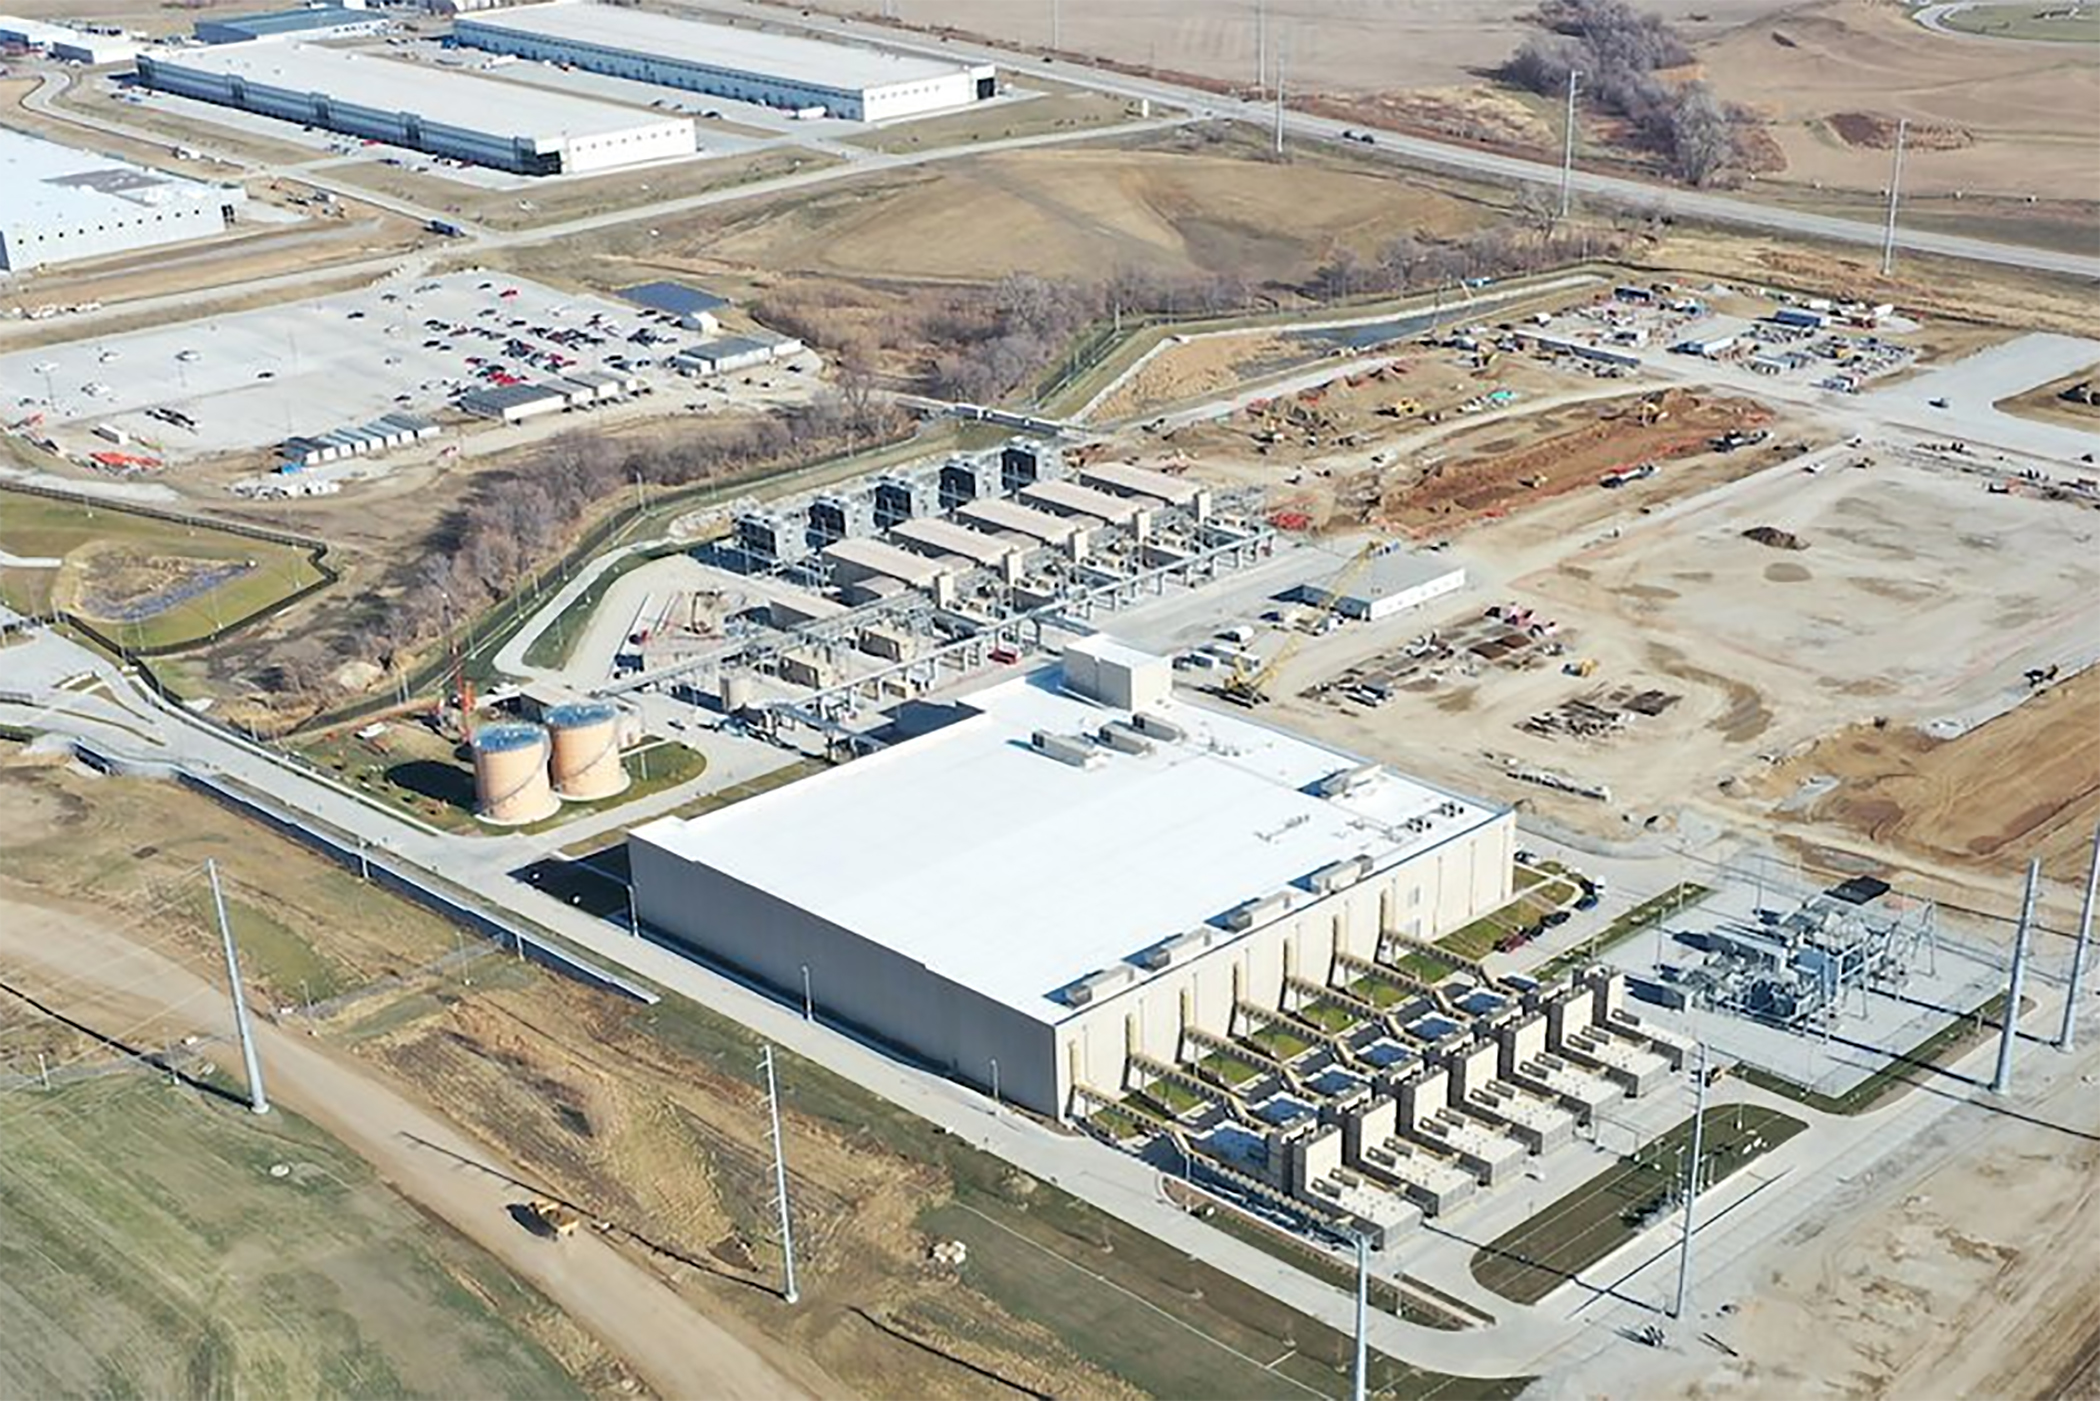 Google moved forward in Papillion, Nebraska, with a data center this year. (Google)